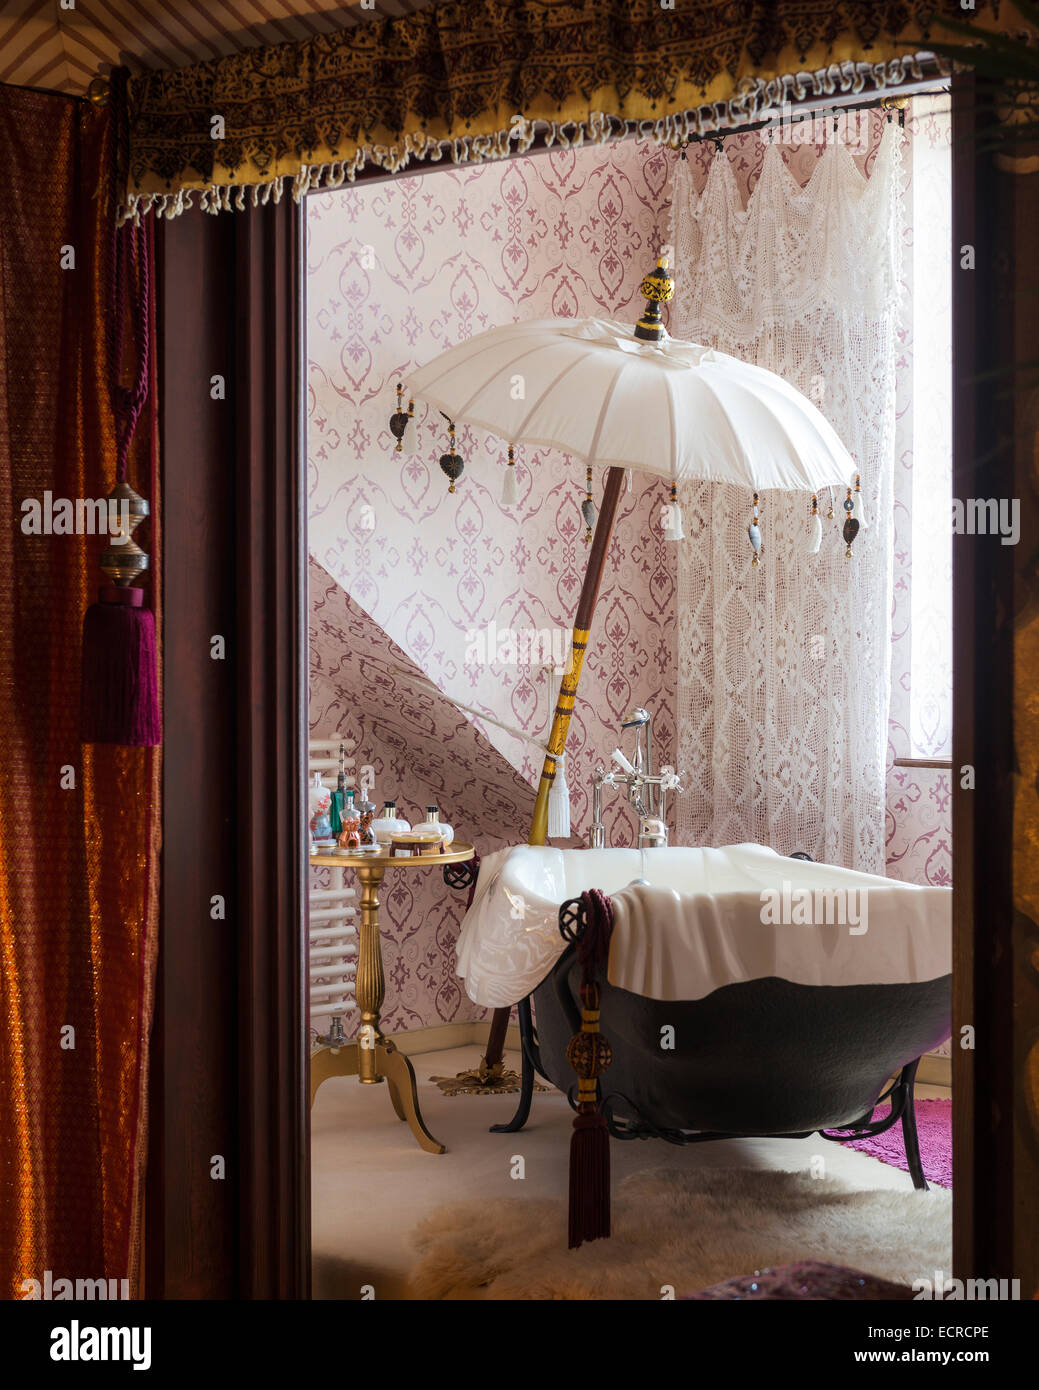 Free standing bath tub with parasol in bathroom with patterned wallpaper and net curtains - Stock Image